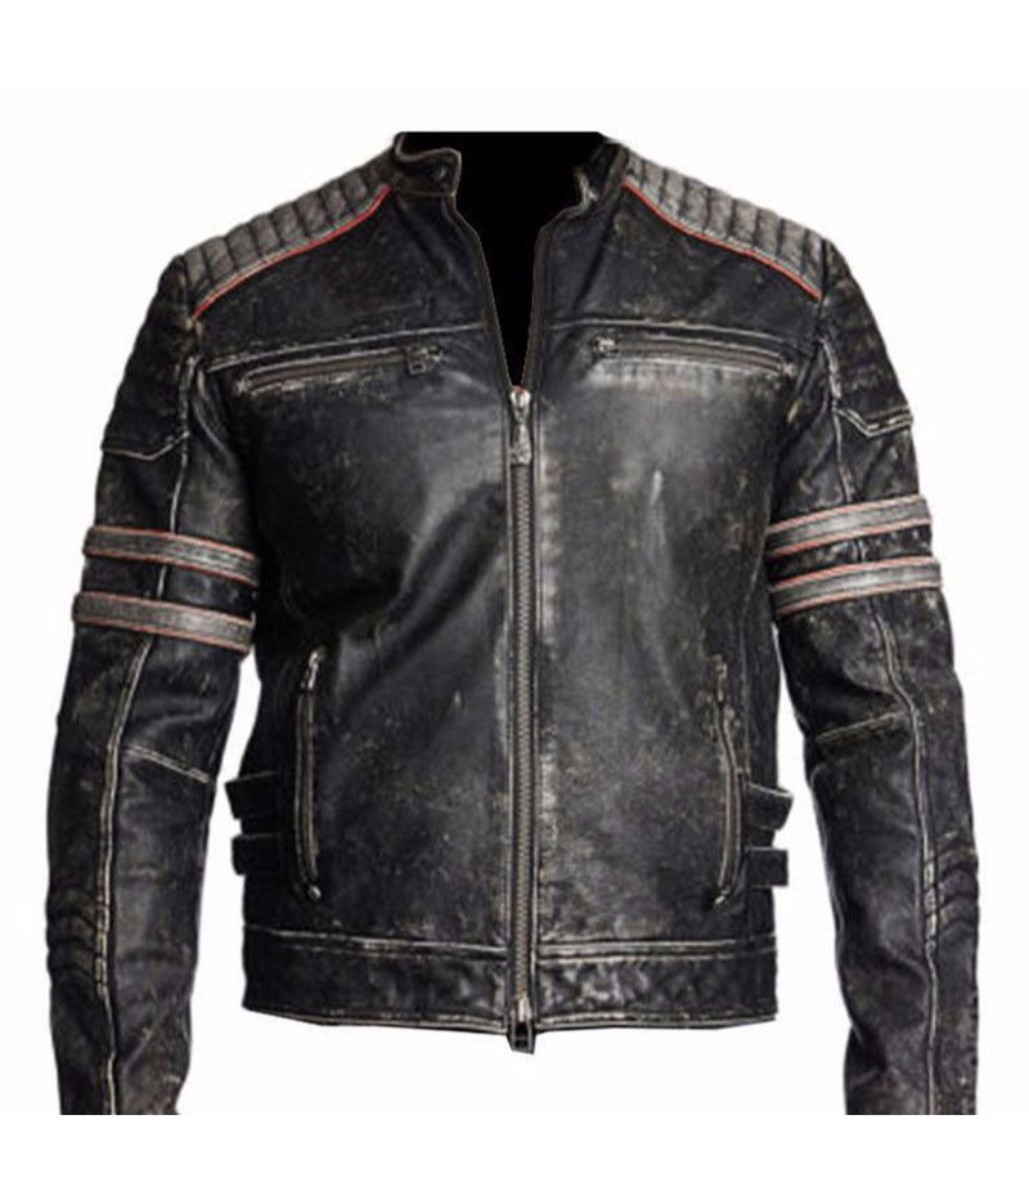 c5523698f41b MEN'S BIKER BLACK RETRO VINTAGE MOTORCYCLE DISTRESSED LEATHER JACKET ...